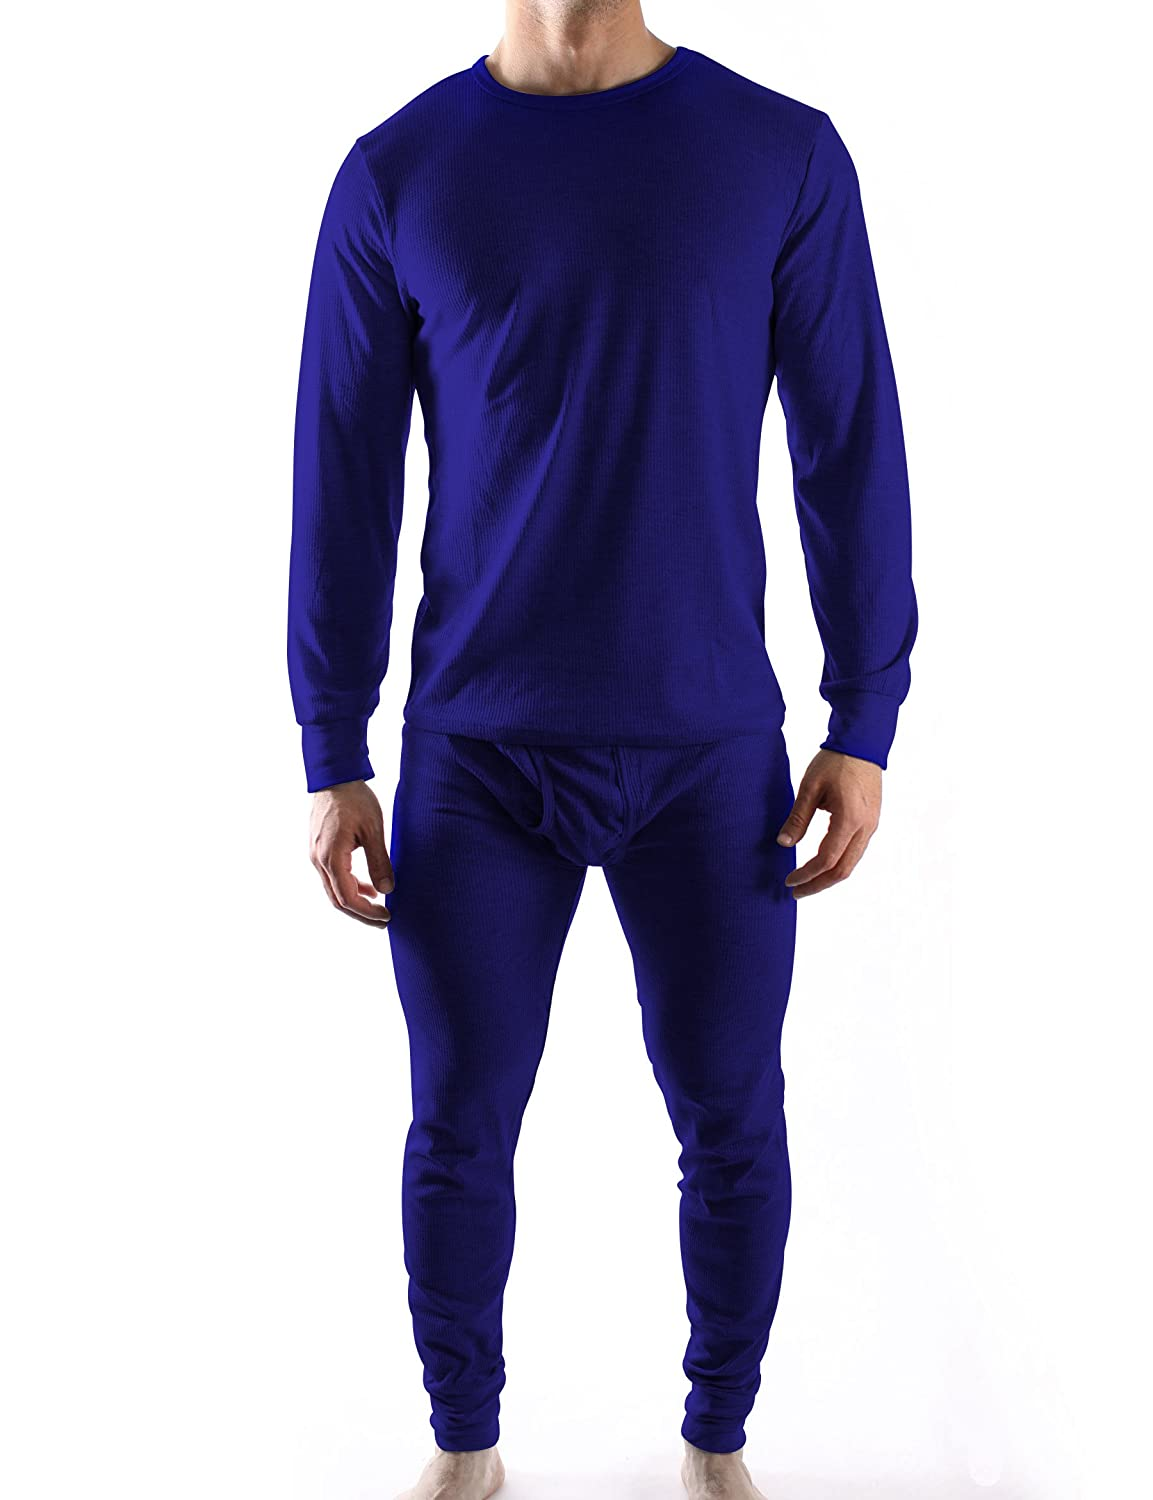 Mens Thermal Underwear Sets Interlock Jersey Or Waffle Knit - Assorted Colors Waffle - Navy)